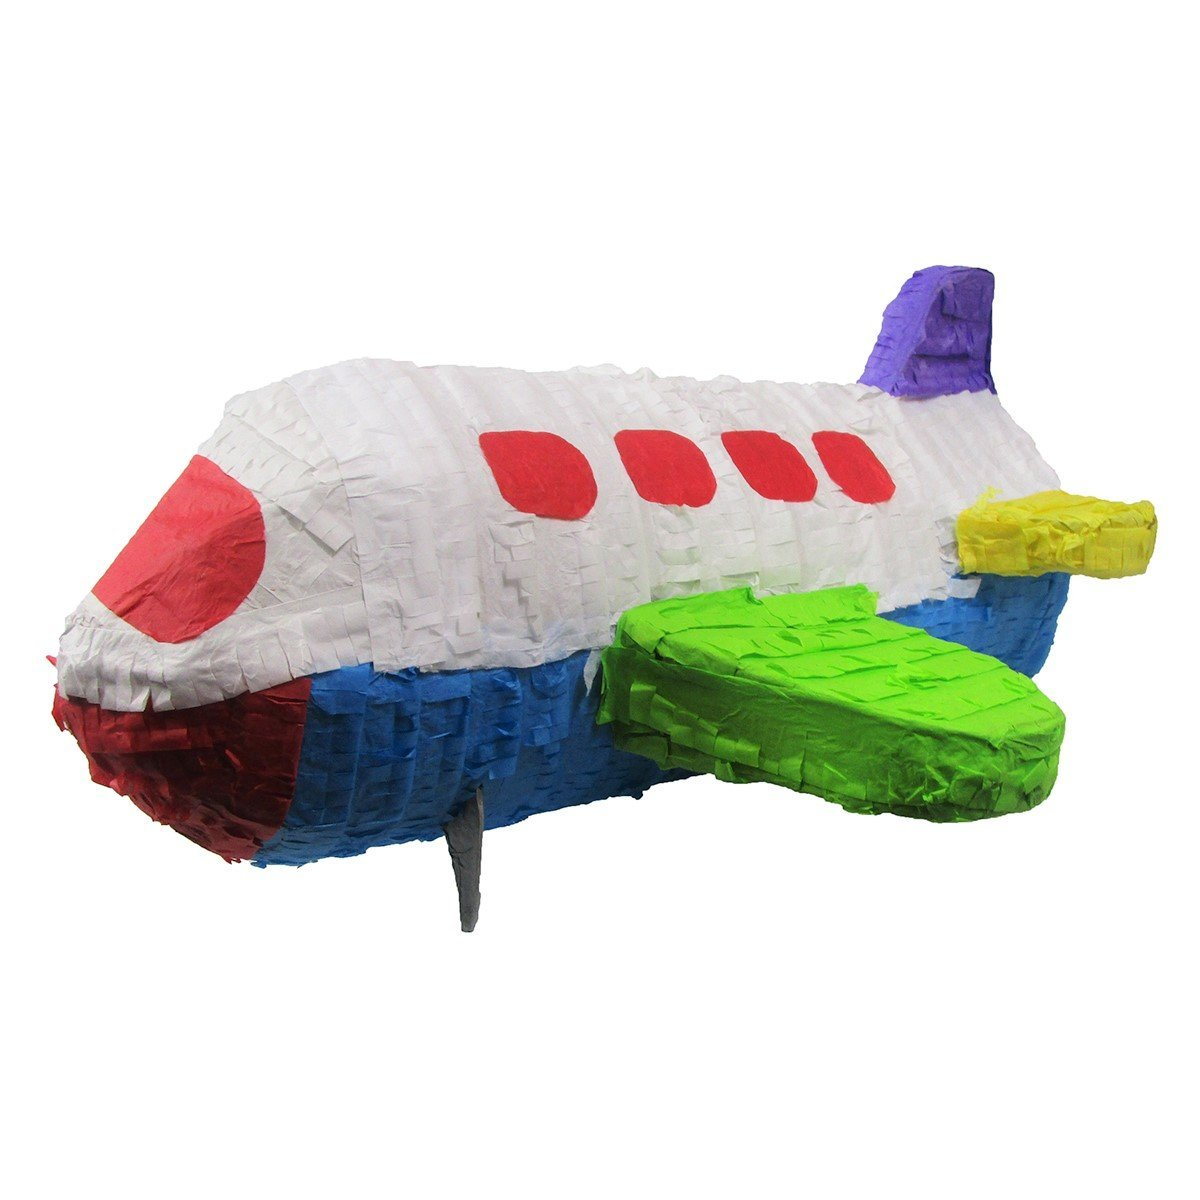 Airplane Pinata, Birthday Party Game and Centerpiece Decoration